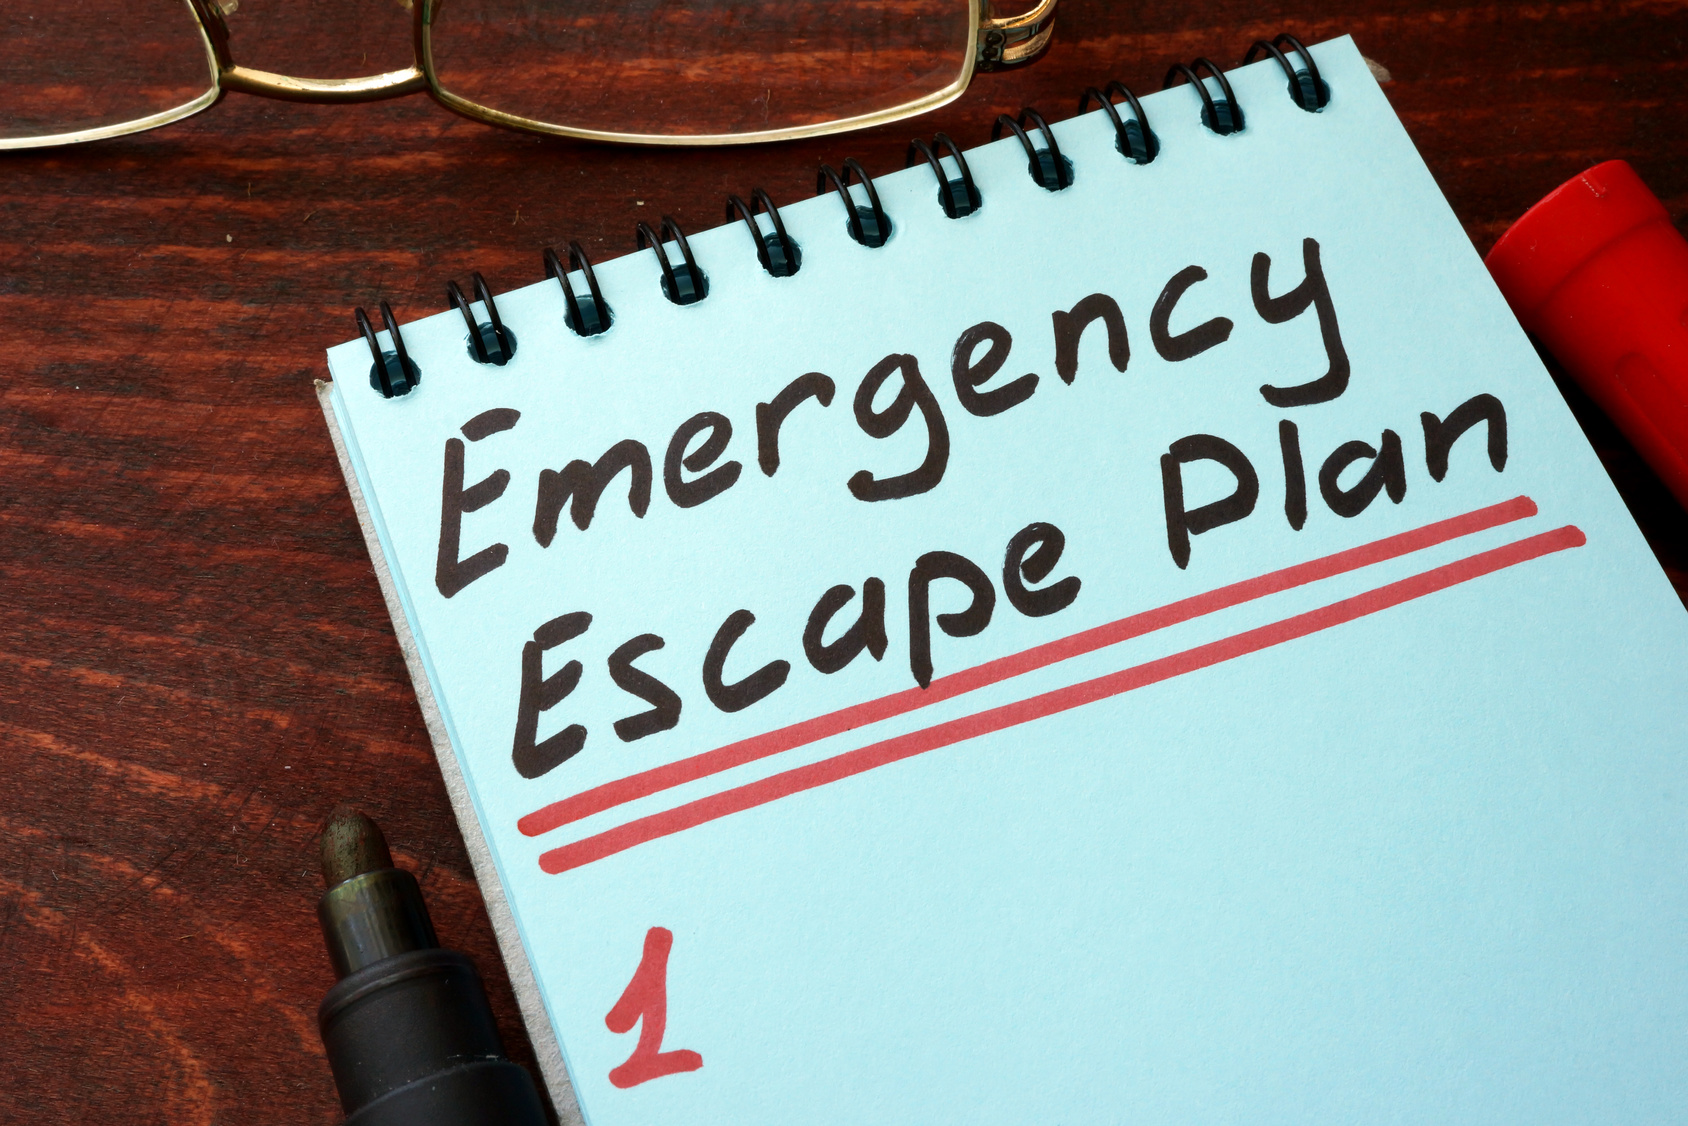 Emergency Escape Plan written on a notepad with marker.